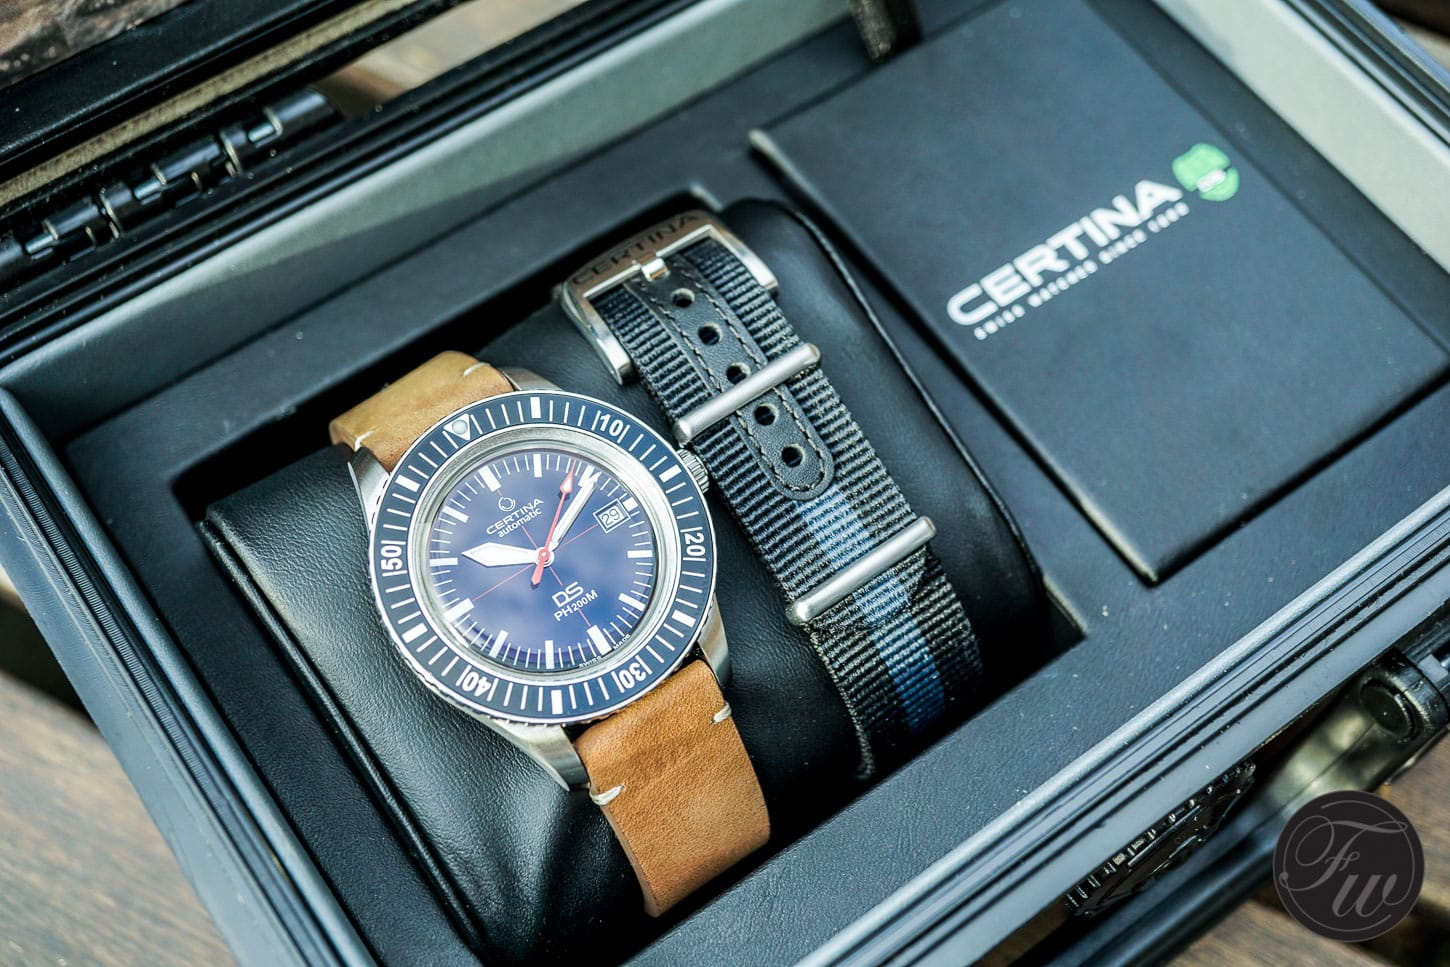 Certina Ds Ph200m Hands On Review Of A Great Diver